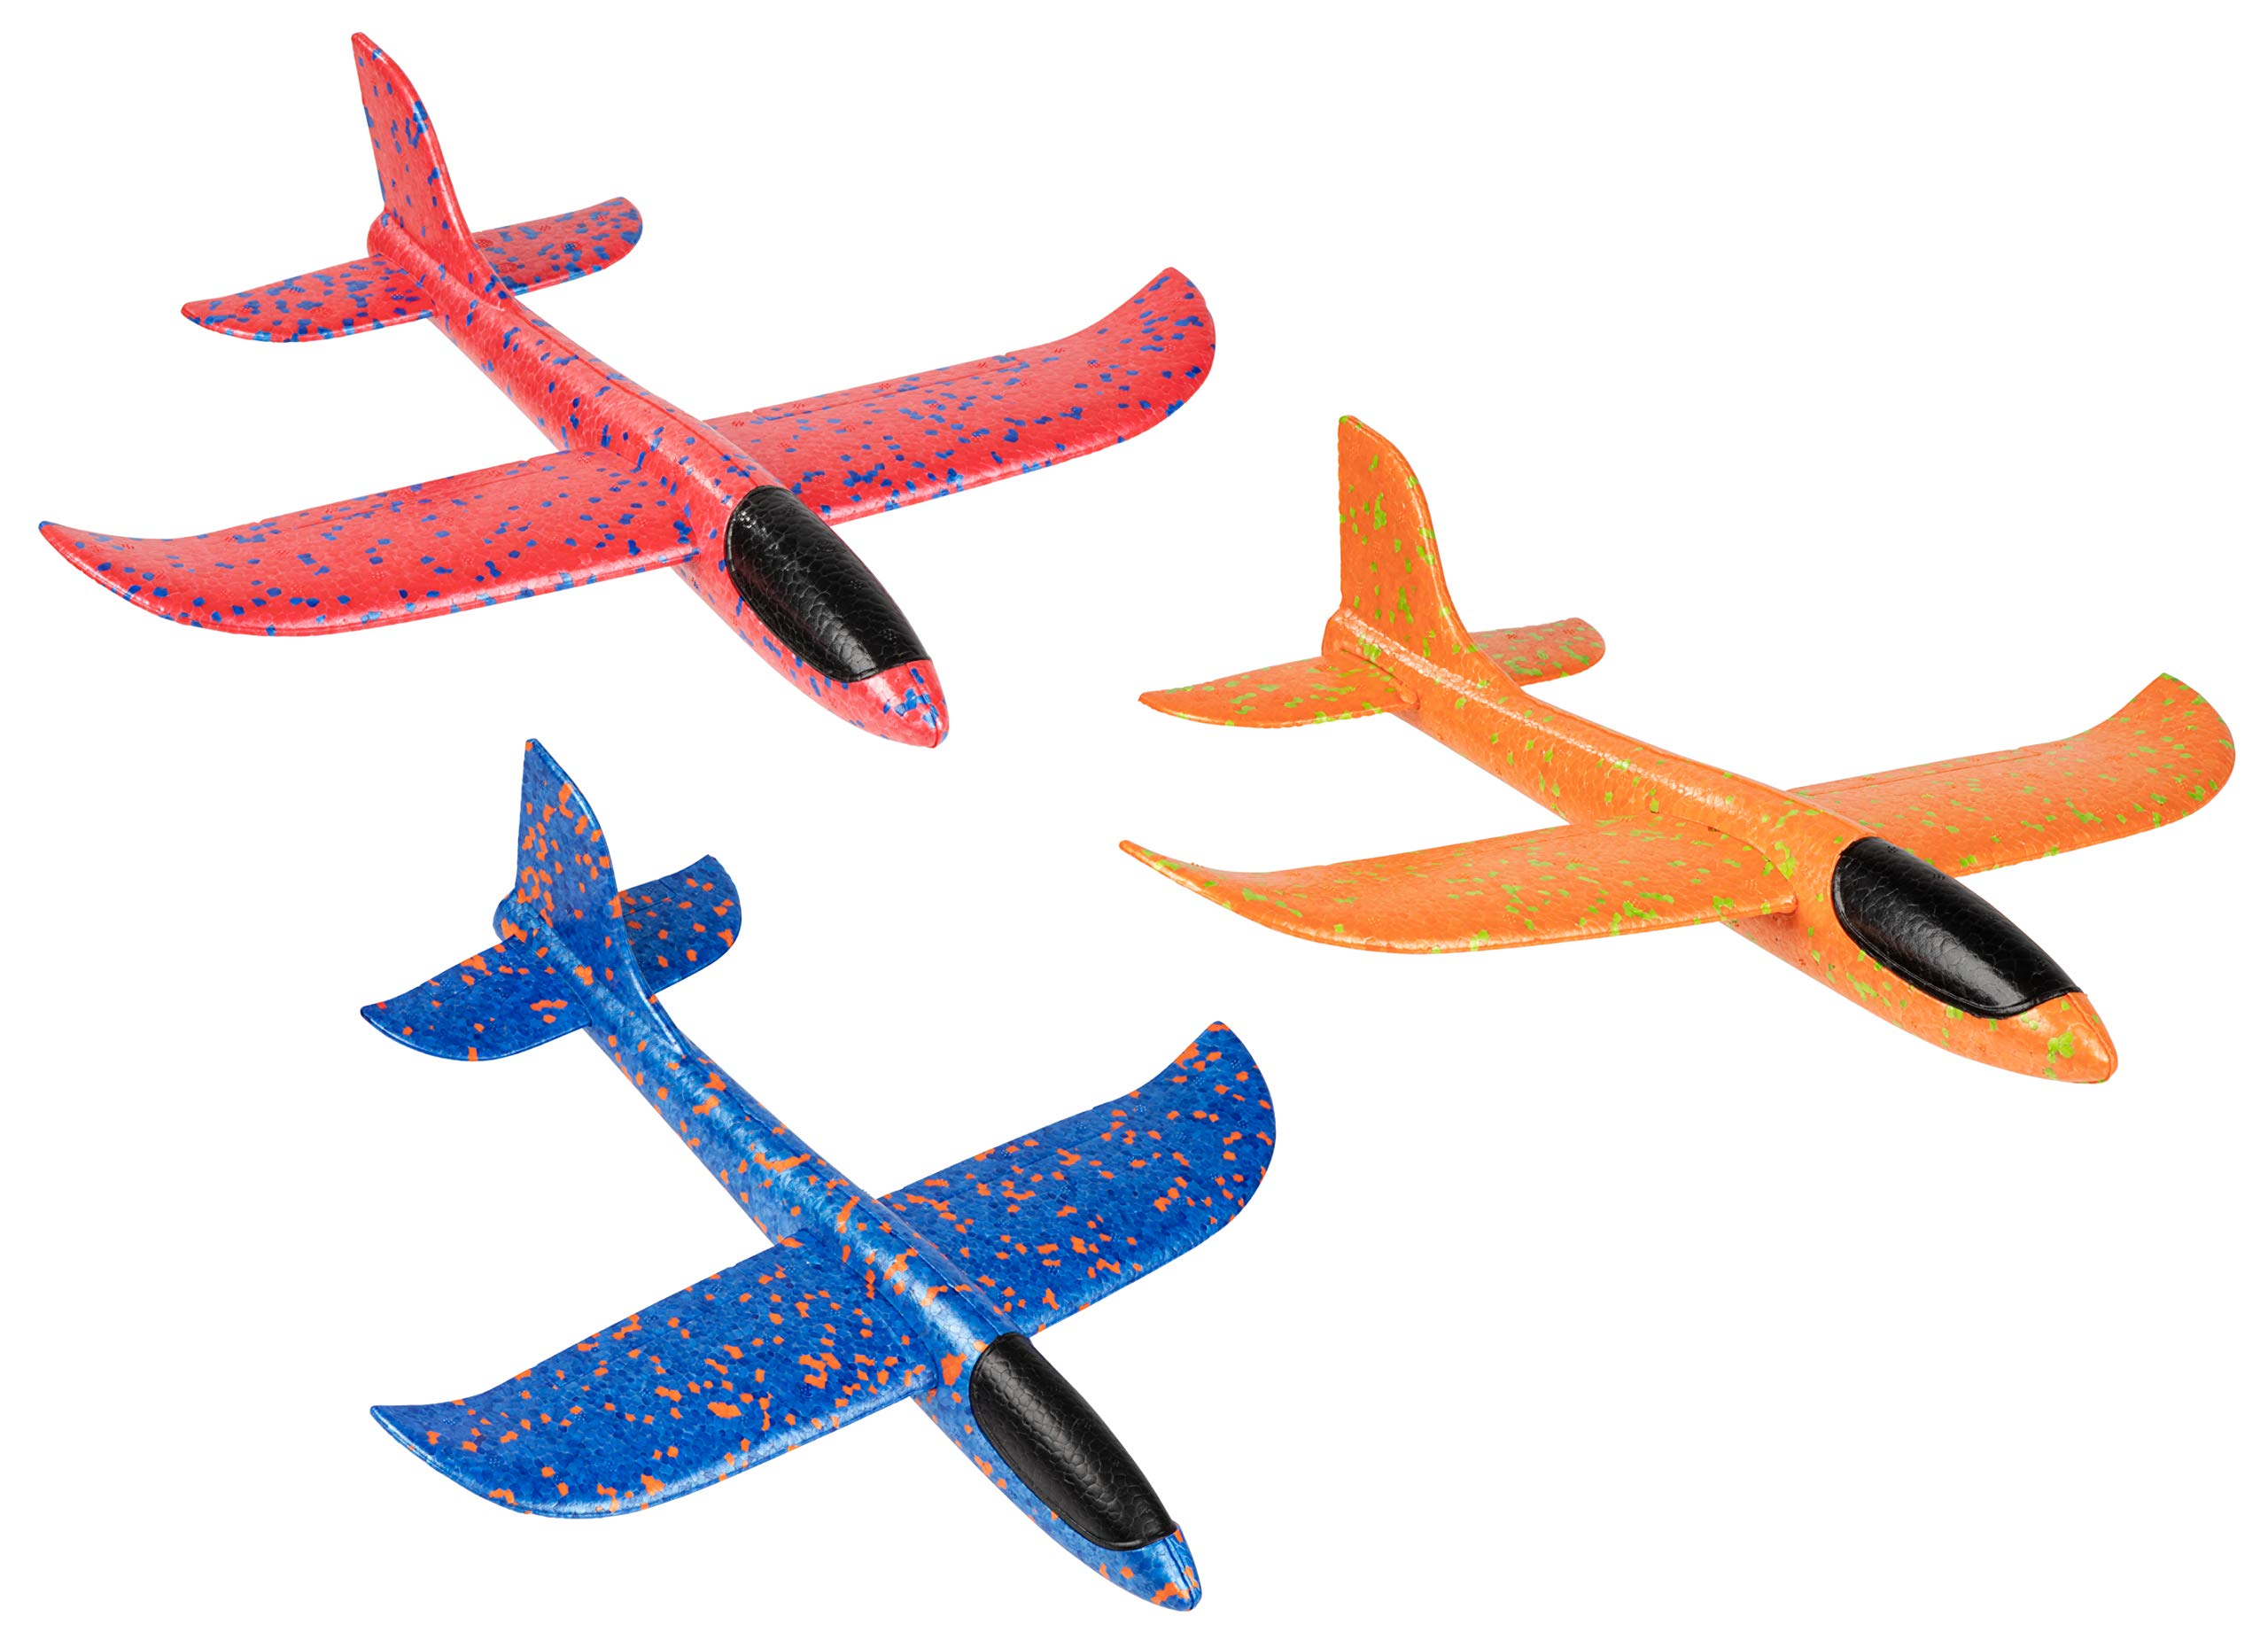 Foam Airplane Toys - 3-Pack Model Foam Plane, Manual Throwing Flying Aircraft for Kids, Outdoor Sports Game, Easy DIY Assembly, Birthday Gift, Party Favors, Blue, Red, Orange, 13.4 x 12.5 x 3 Inches by Juvale (Image #1)